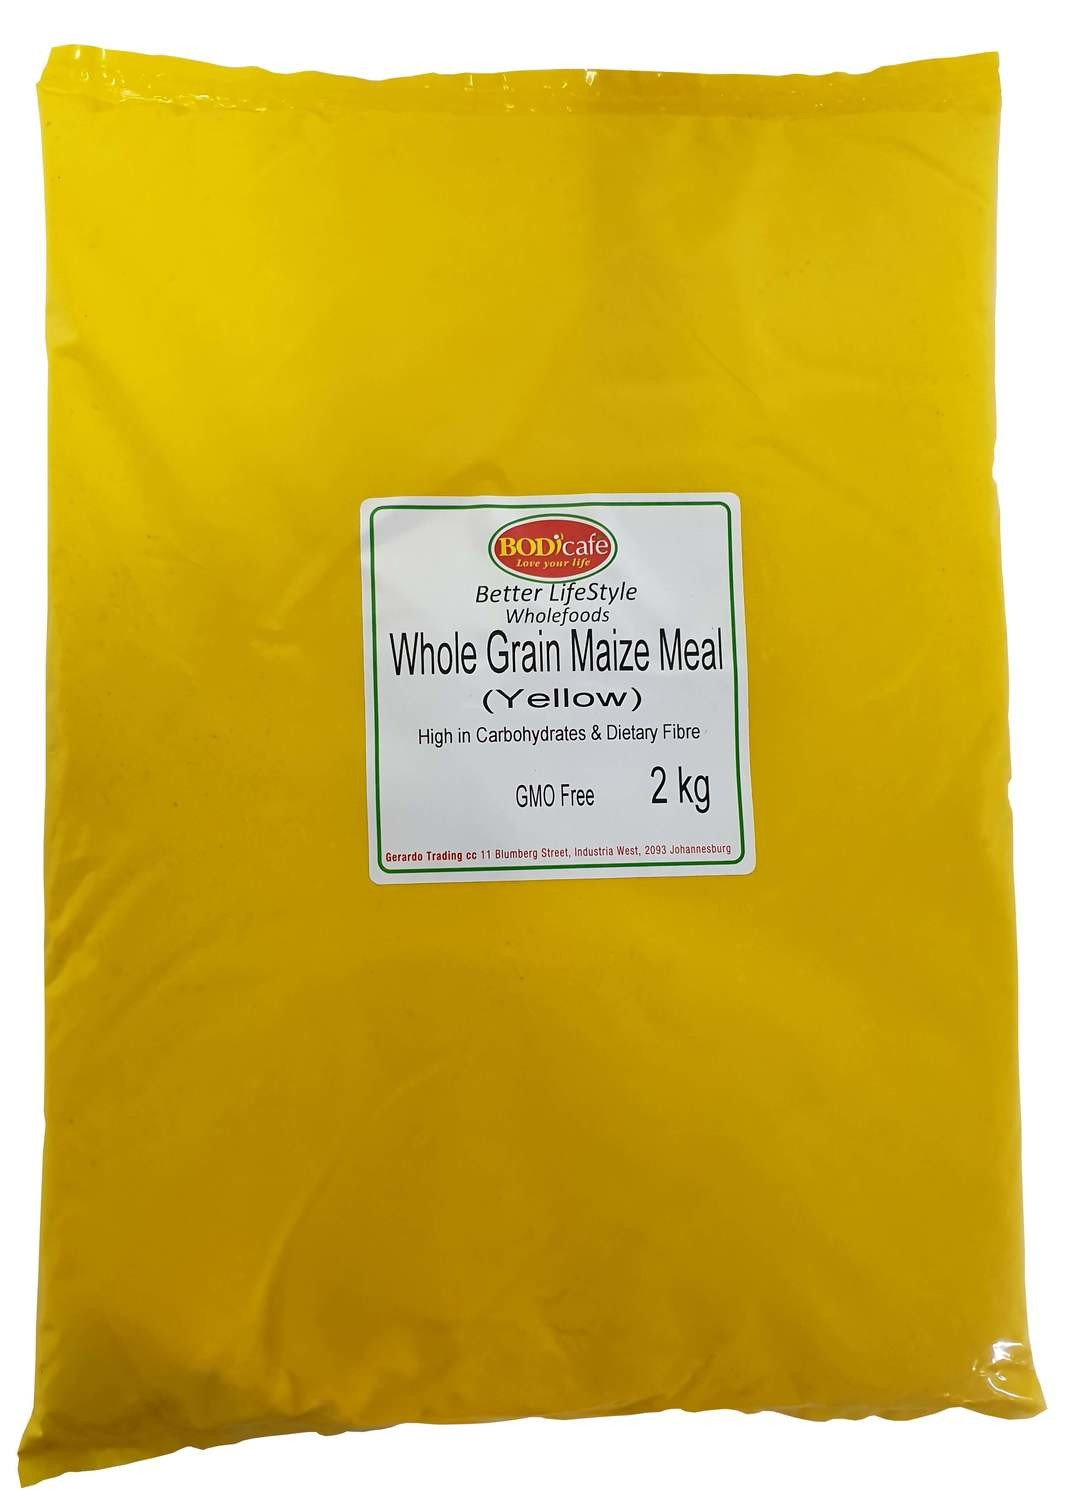 Whole Grain Maize Meal (Yellow) 2kg